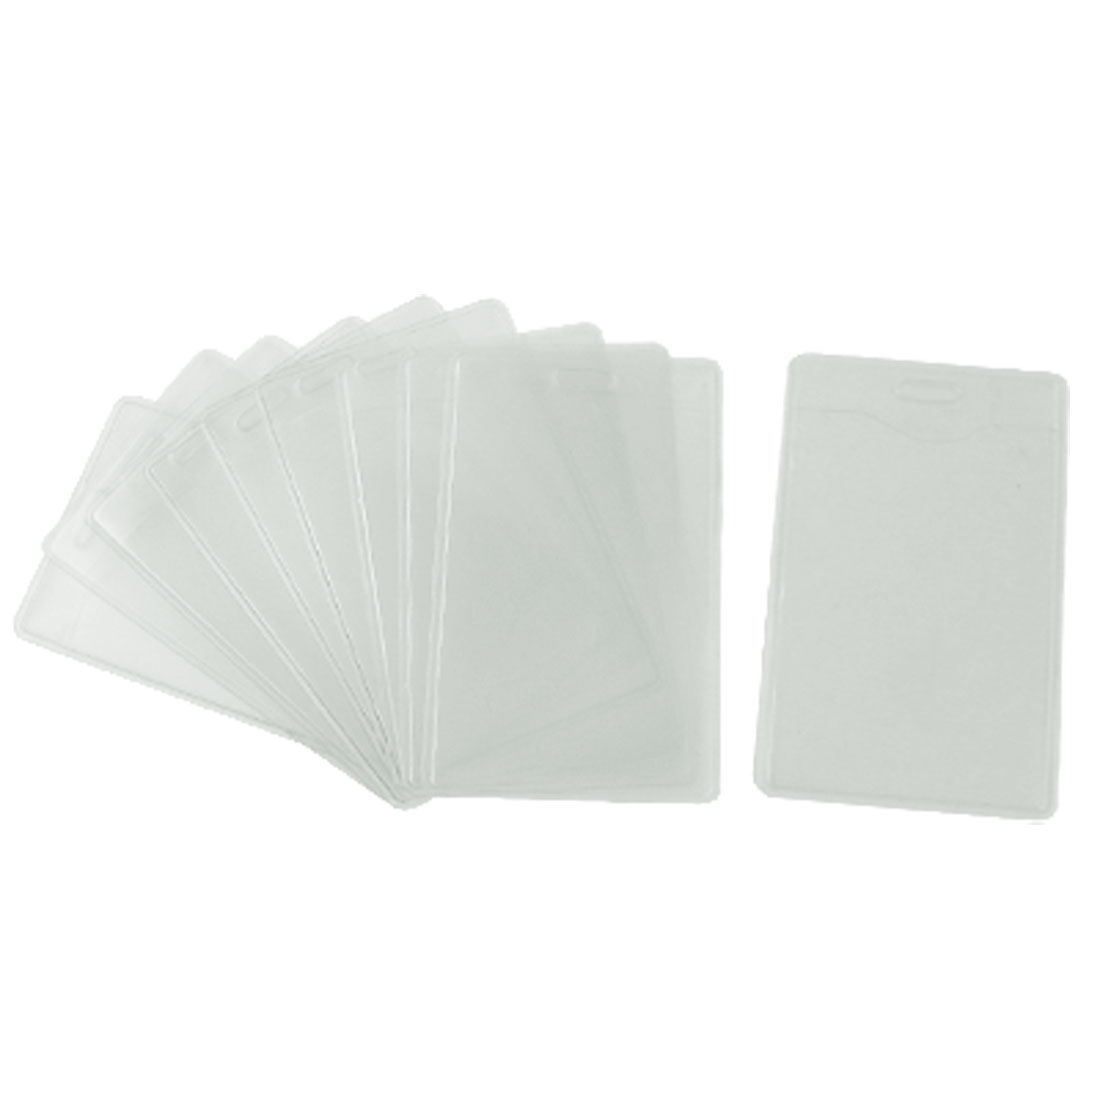 10 Pcs Clear White Plastic ID Name Cards Holders